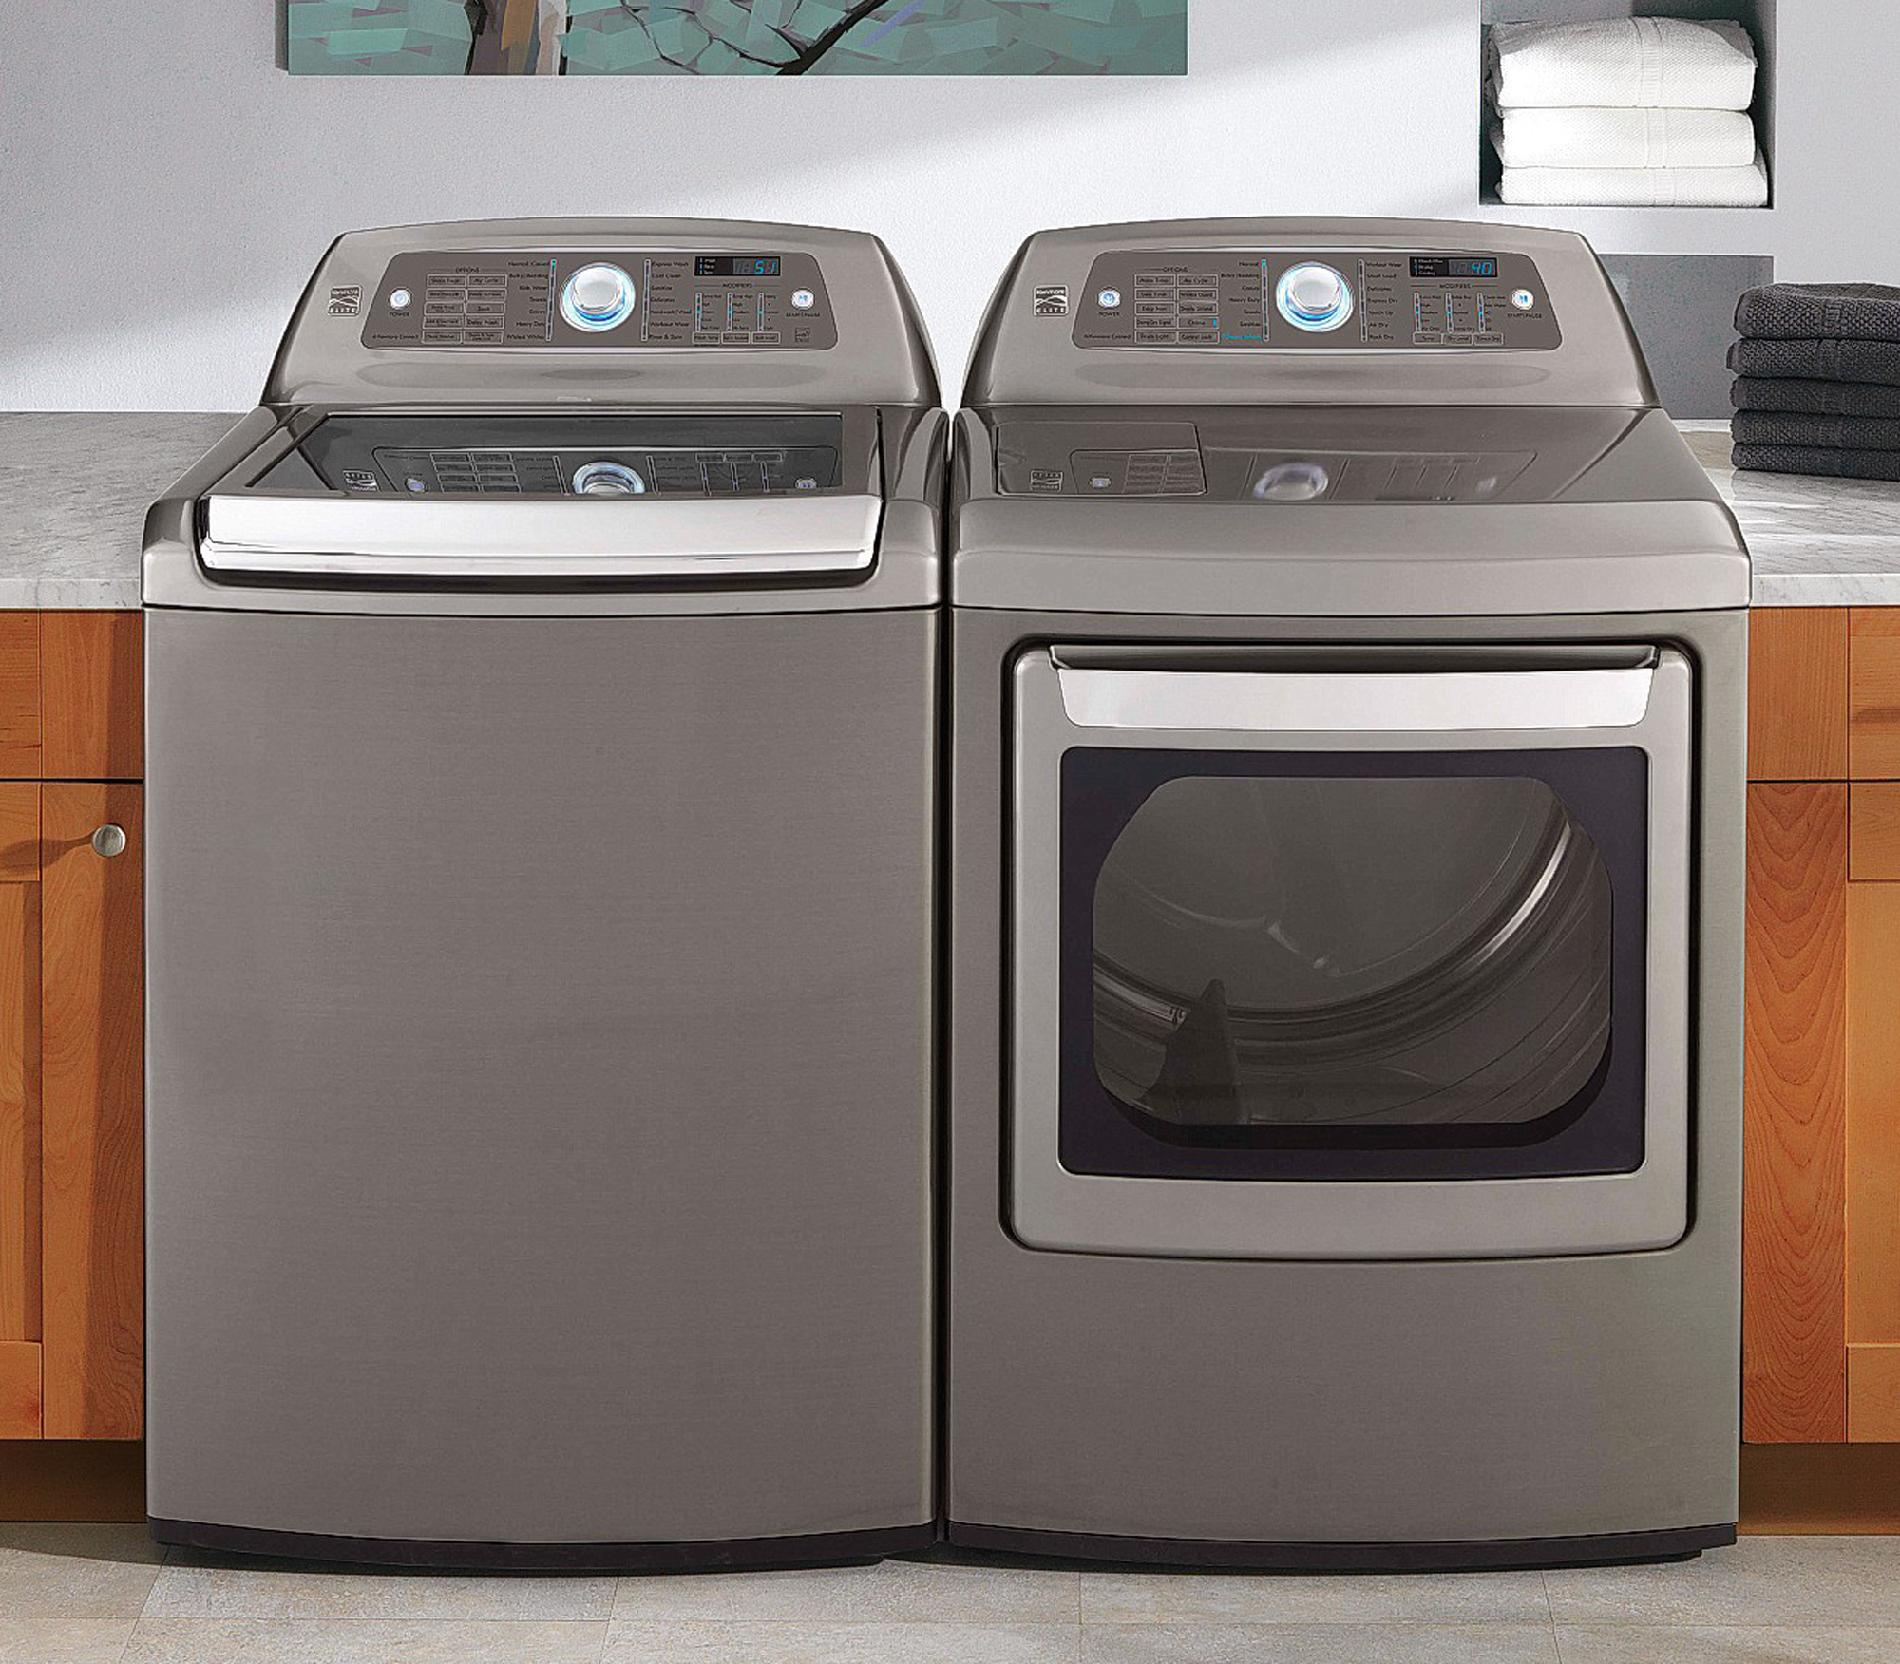 Kenmore Elite 4.7 cu. ft. High-Efficiency Top-Load Washer - Metallic